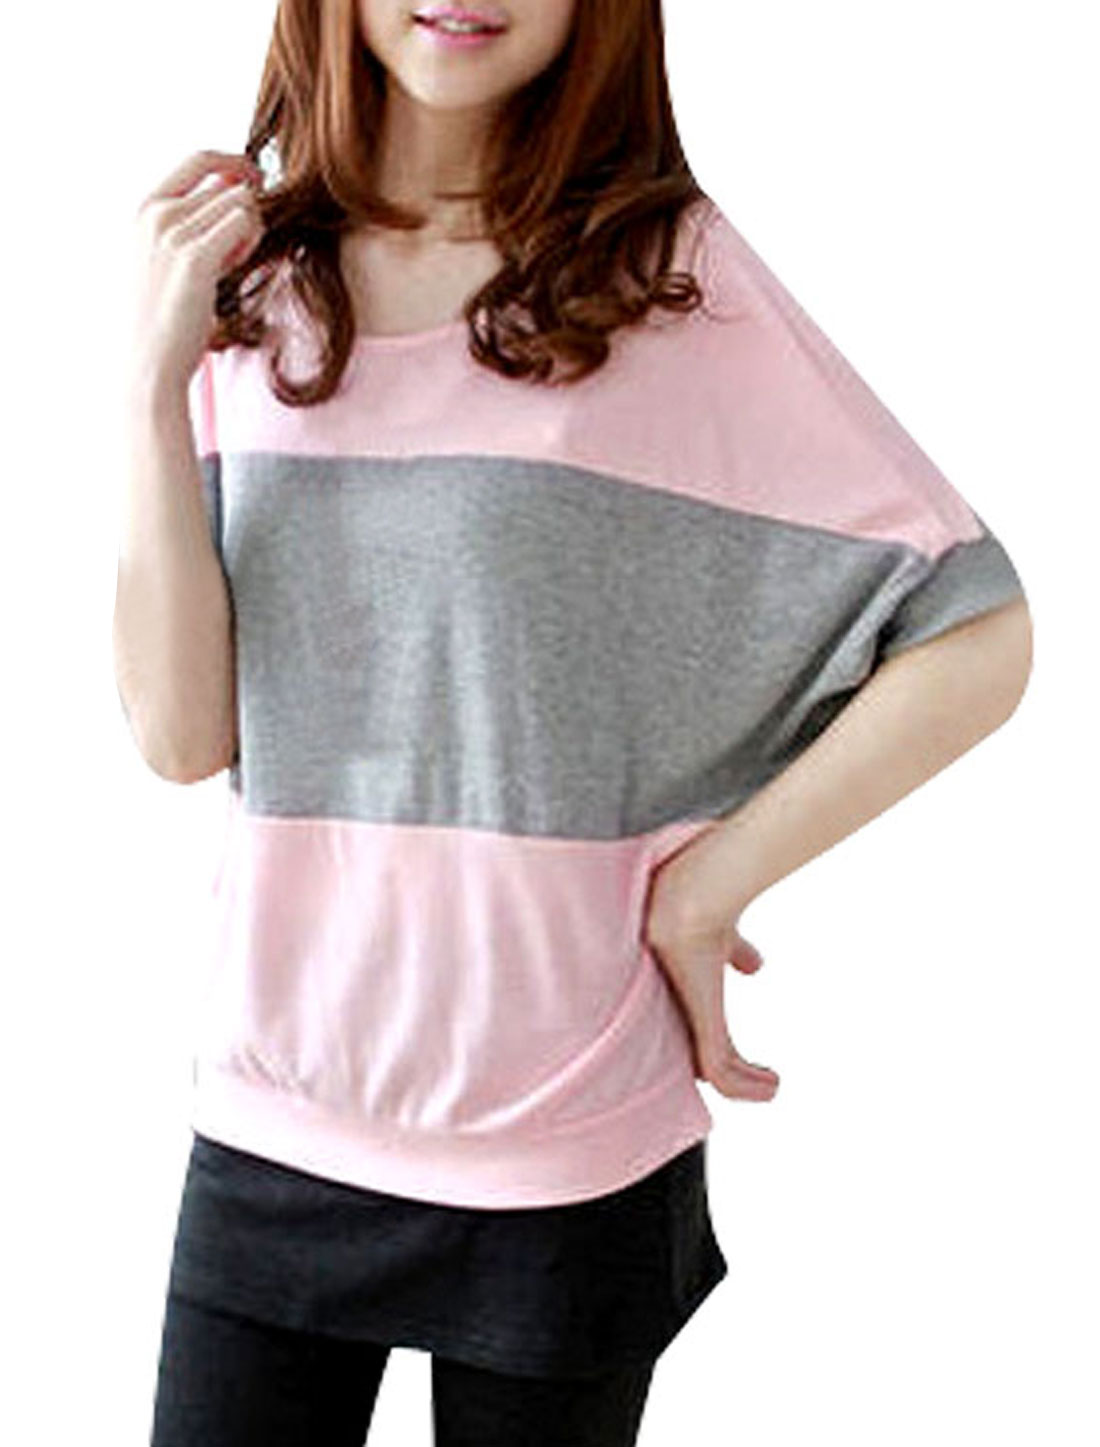 Women Pullover Batwing Sleeves Casual Loose T-Shirt Blouse Pink Gray S